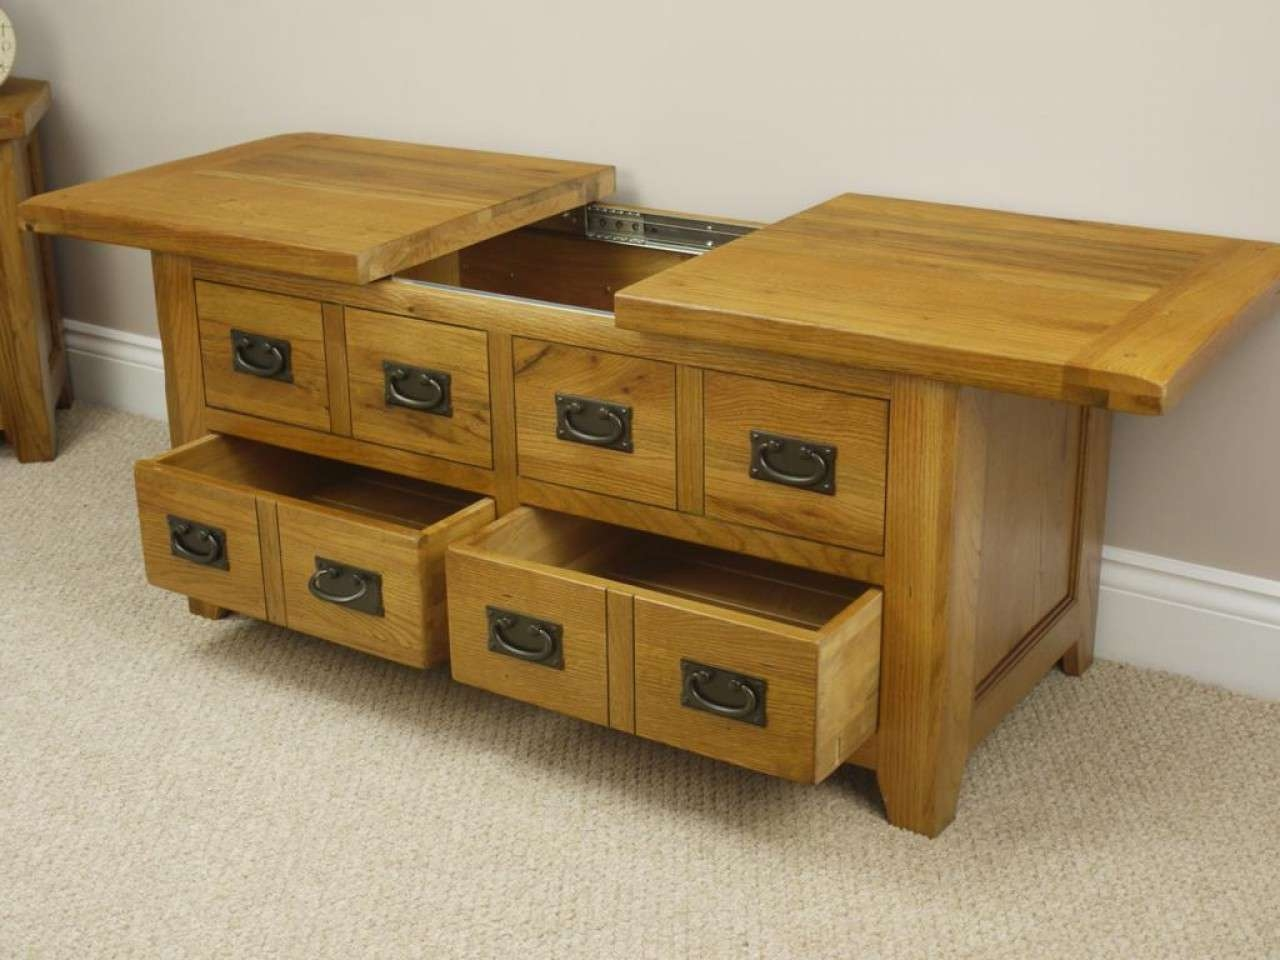 Widely Used Rustic Coffee Table Drawers In Coffee Tables : Pl Bo X Storage Coffee Tables Sonoma Table M S (View 20 of 20)